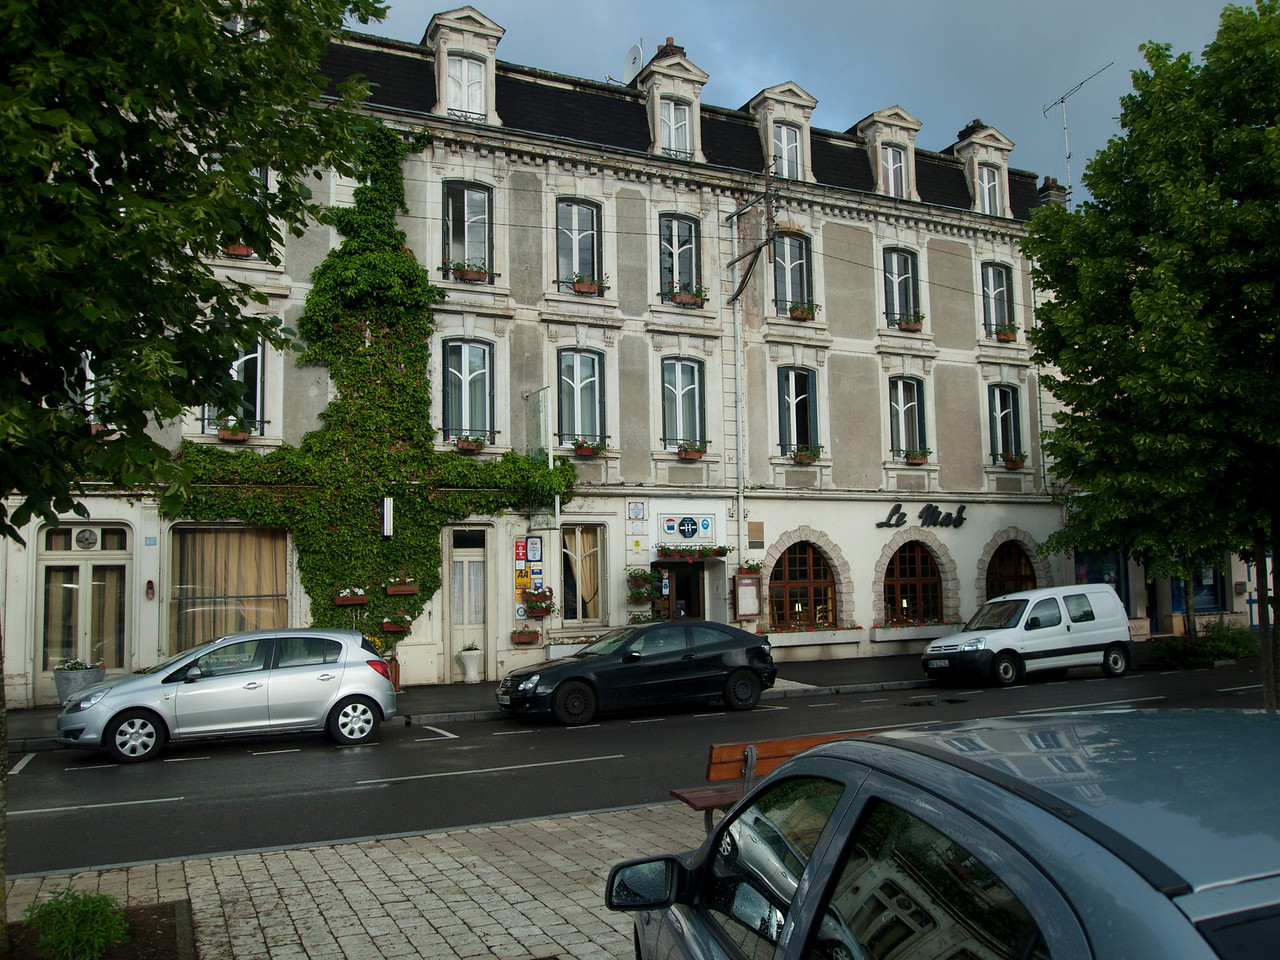 The outside of the Longuyon Hotel.